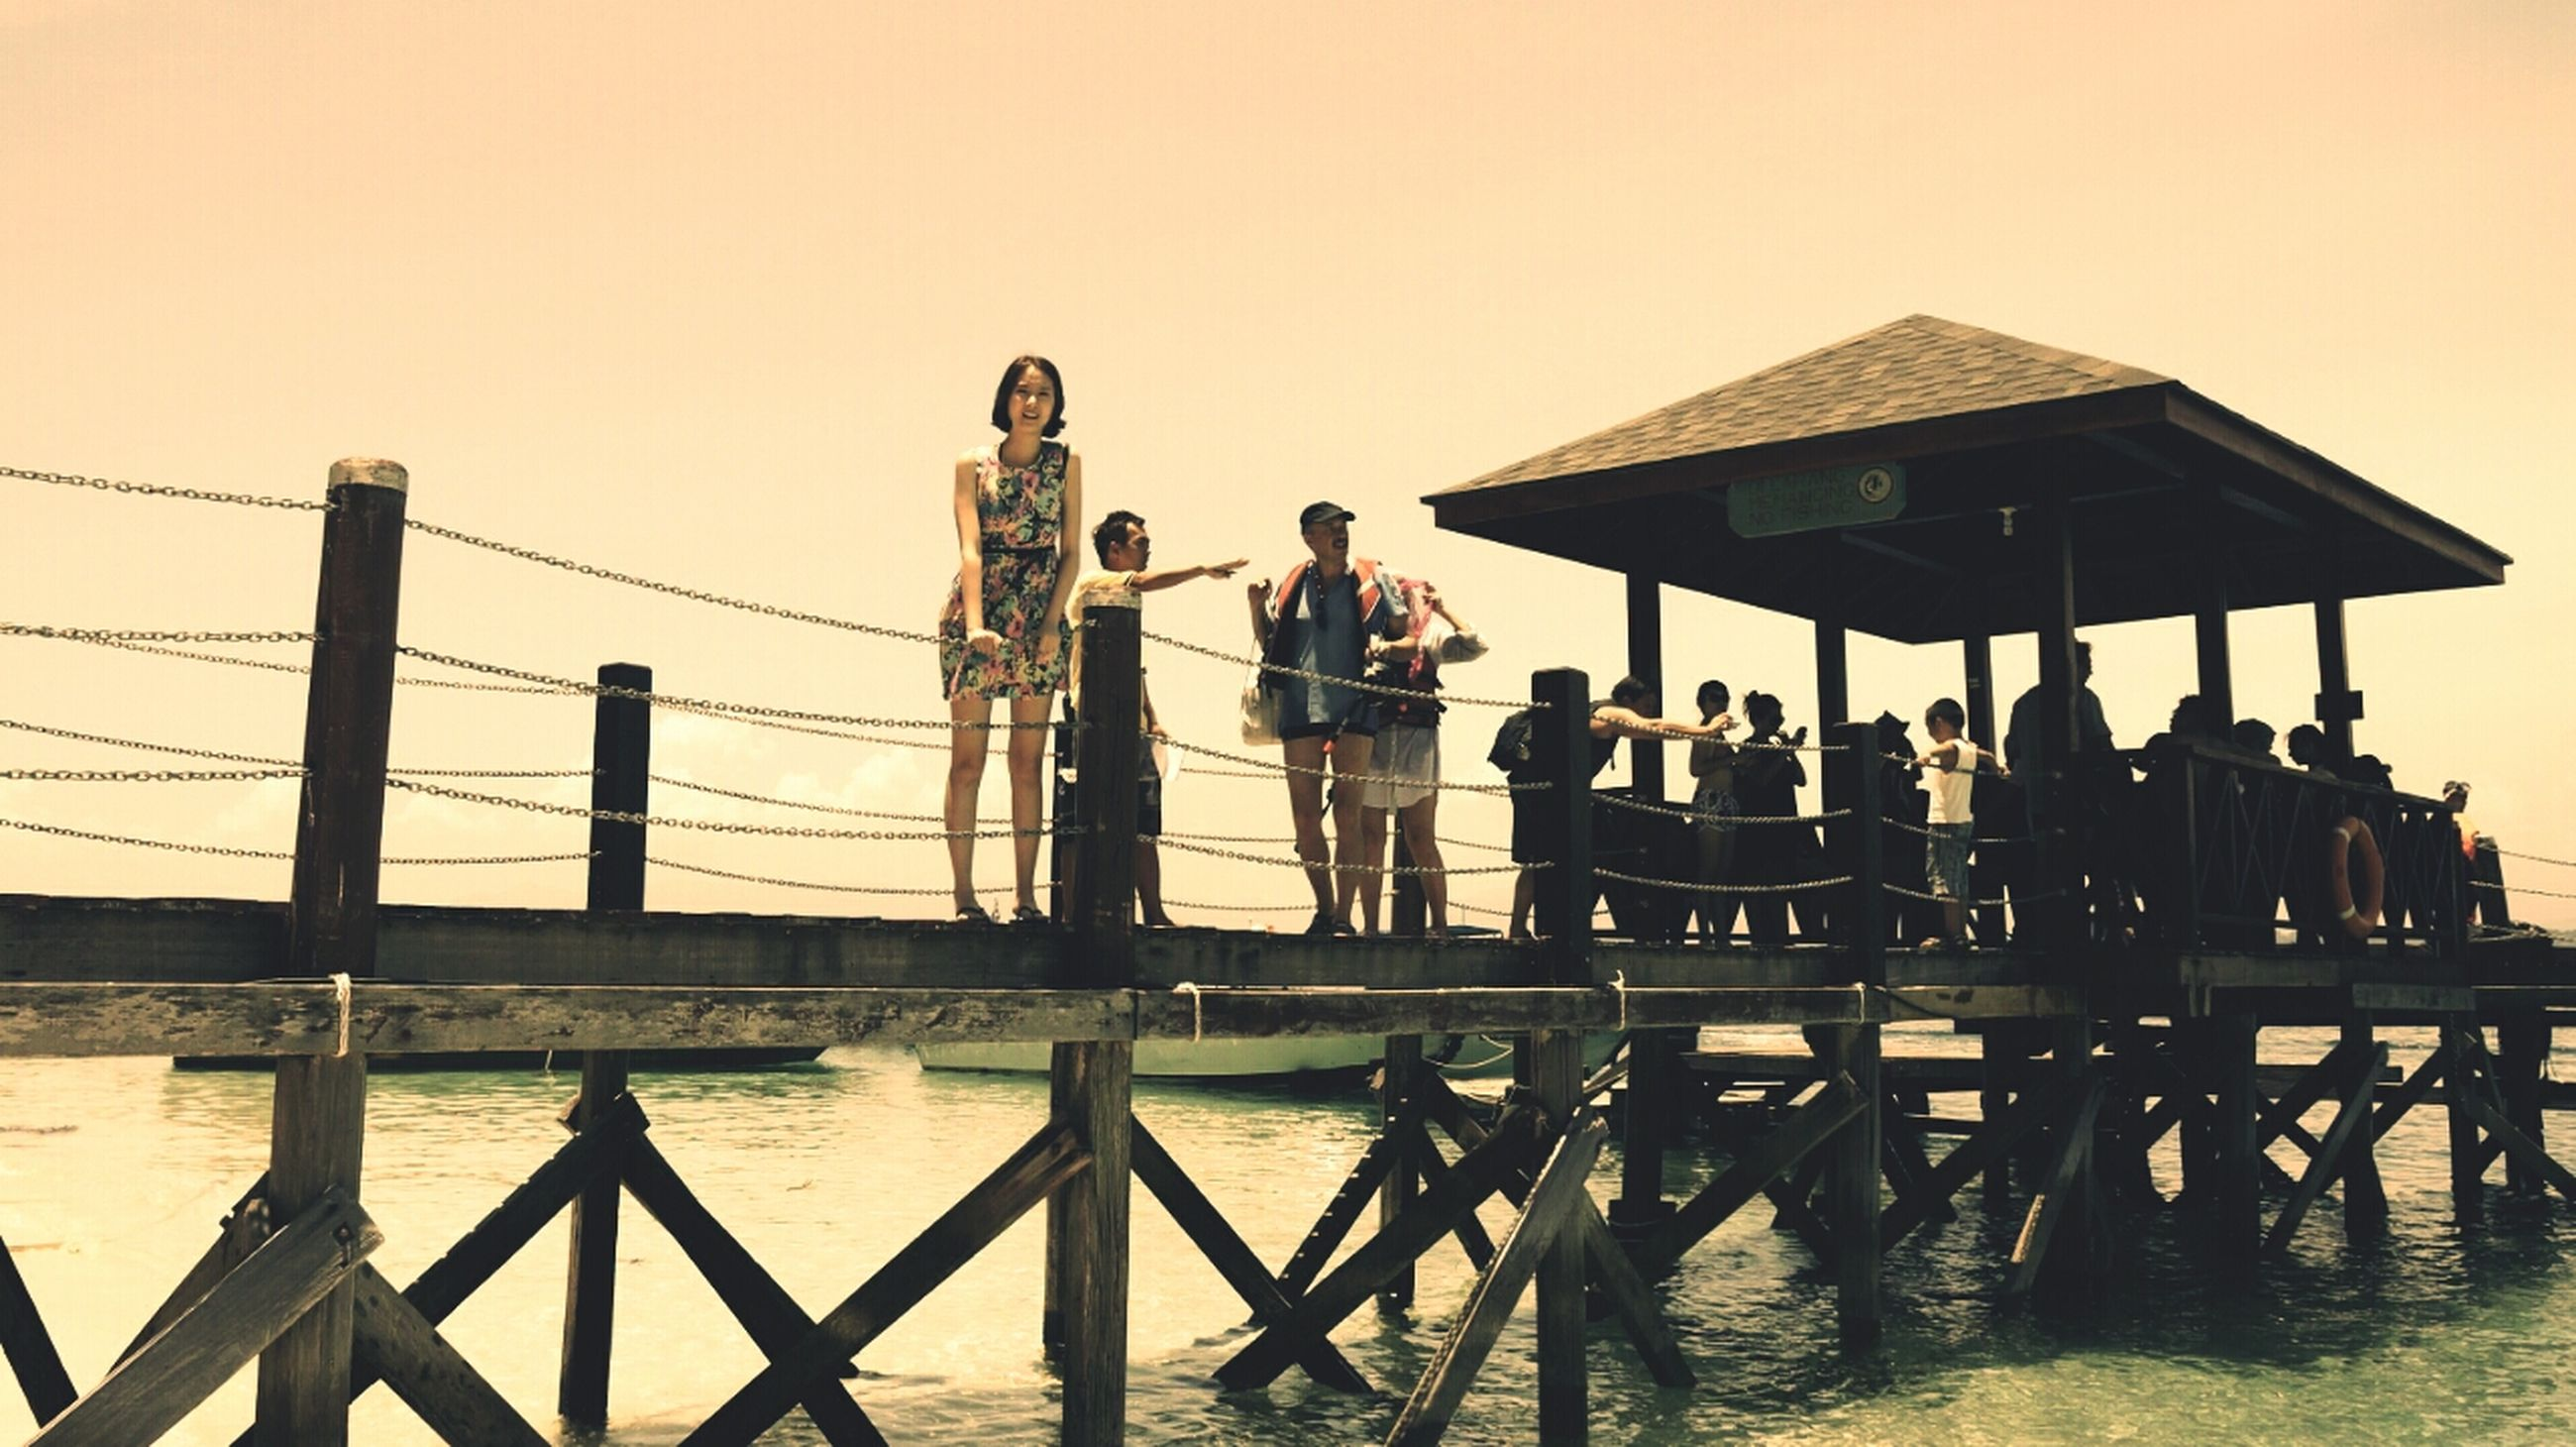 water, sea, men, clear sky, leisure activity, lifestyles, built structure, railing, person, pier, architecture, large group of people, sky, copy space, medium group of people, standing, togetherness, outdoors